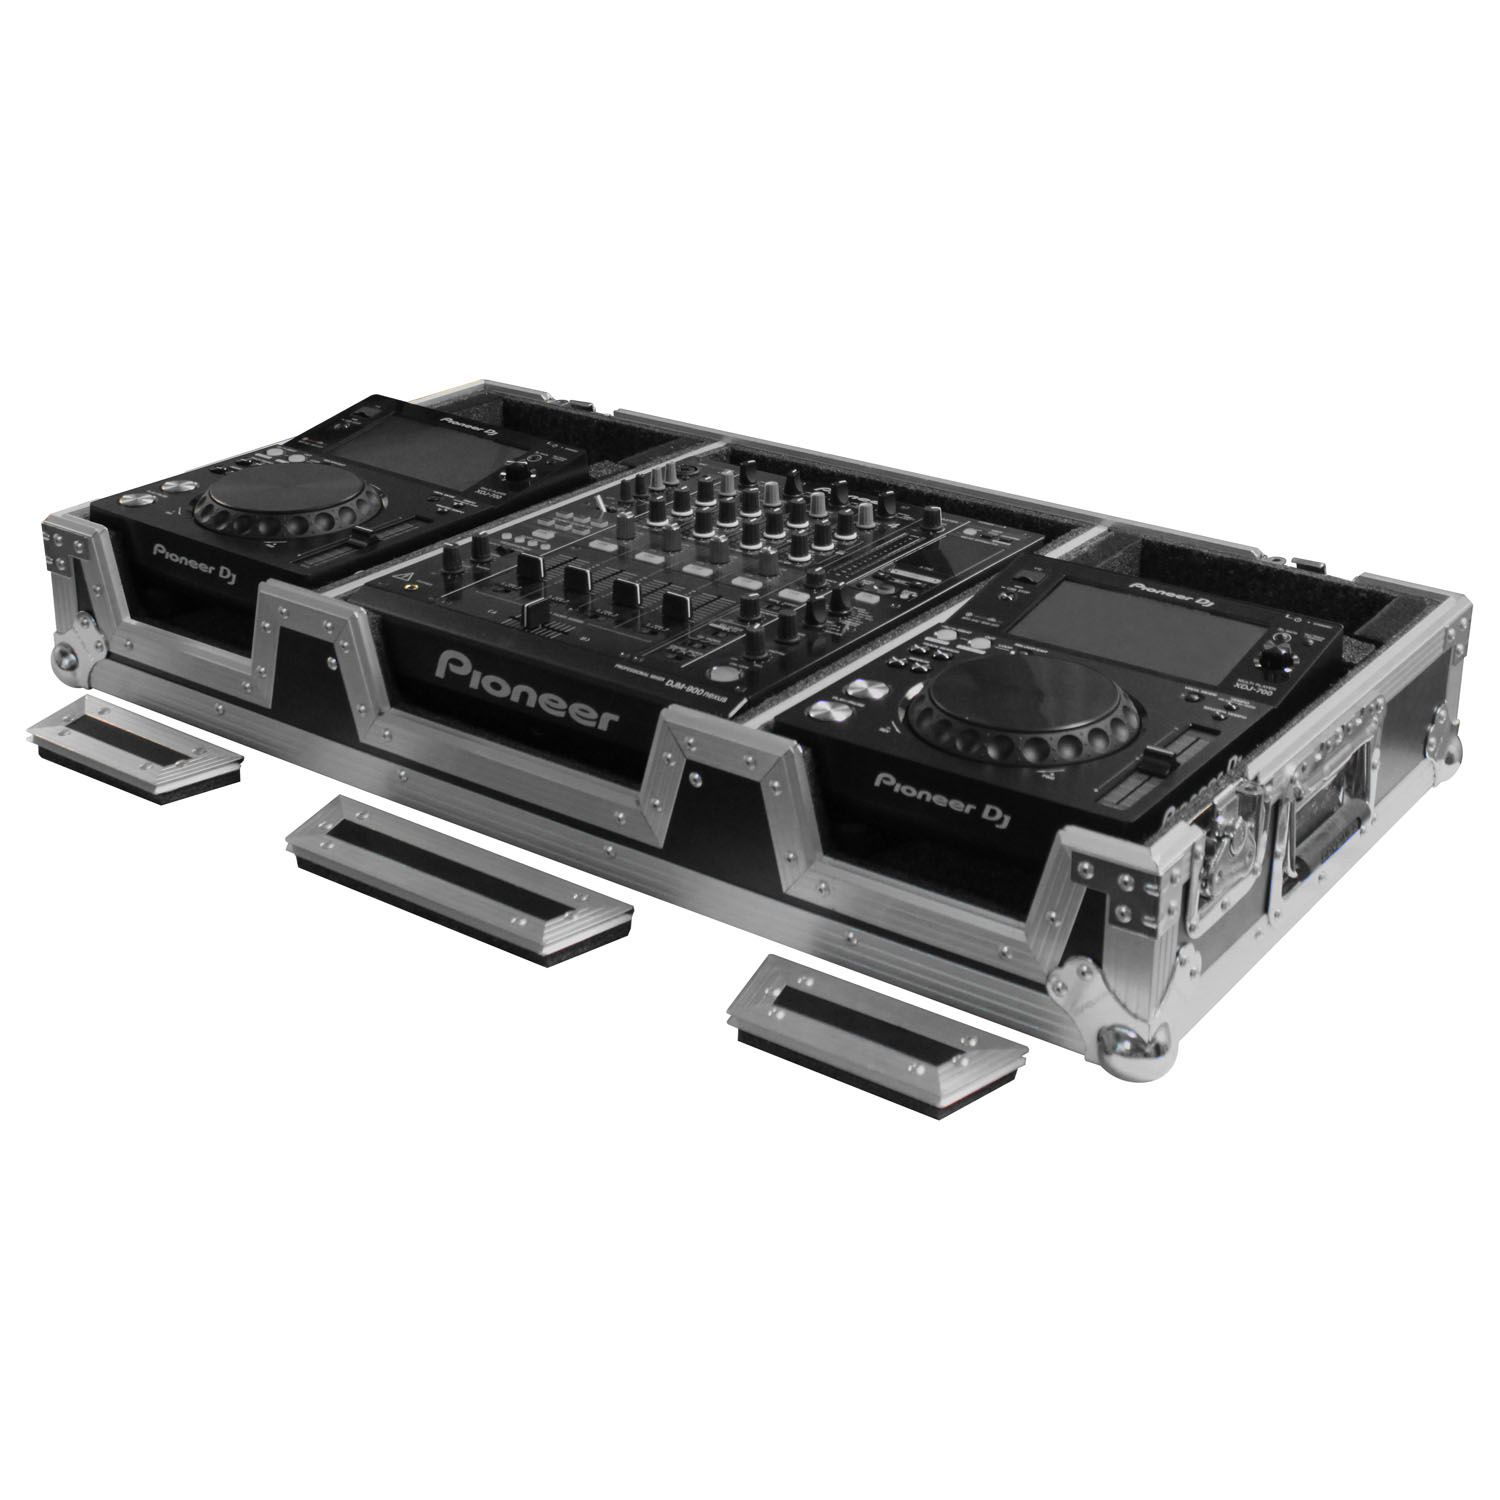 Universal 12 inch format dj mixer and two medium format media players coffin case